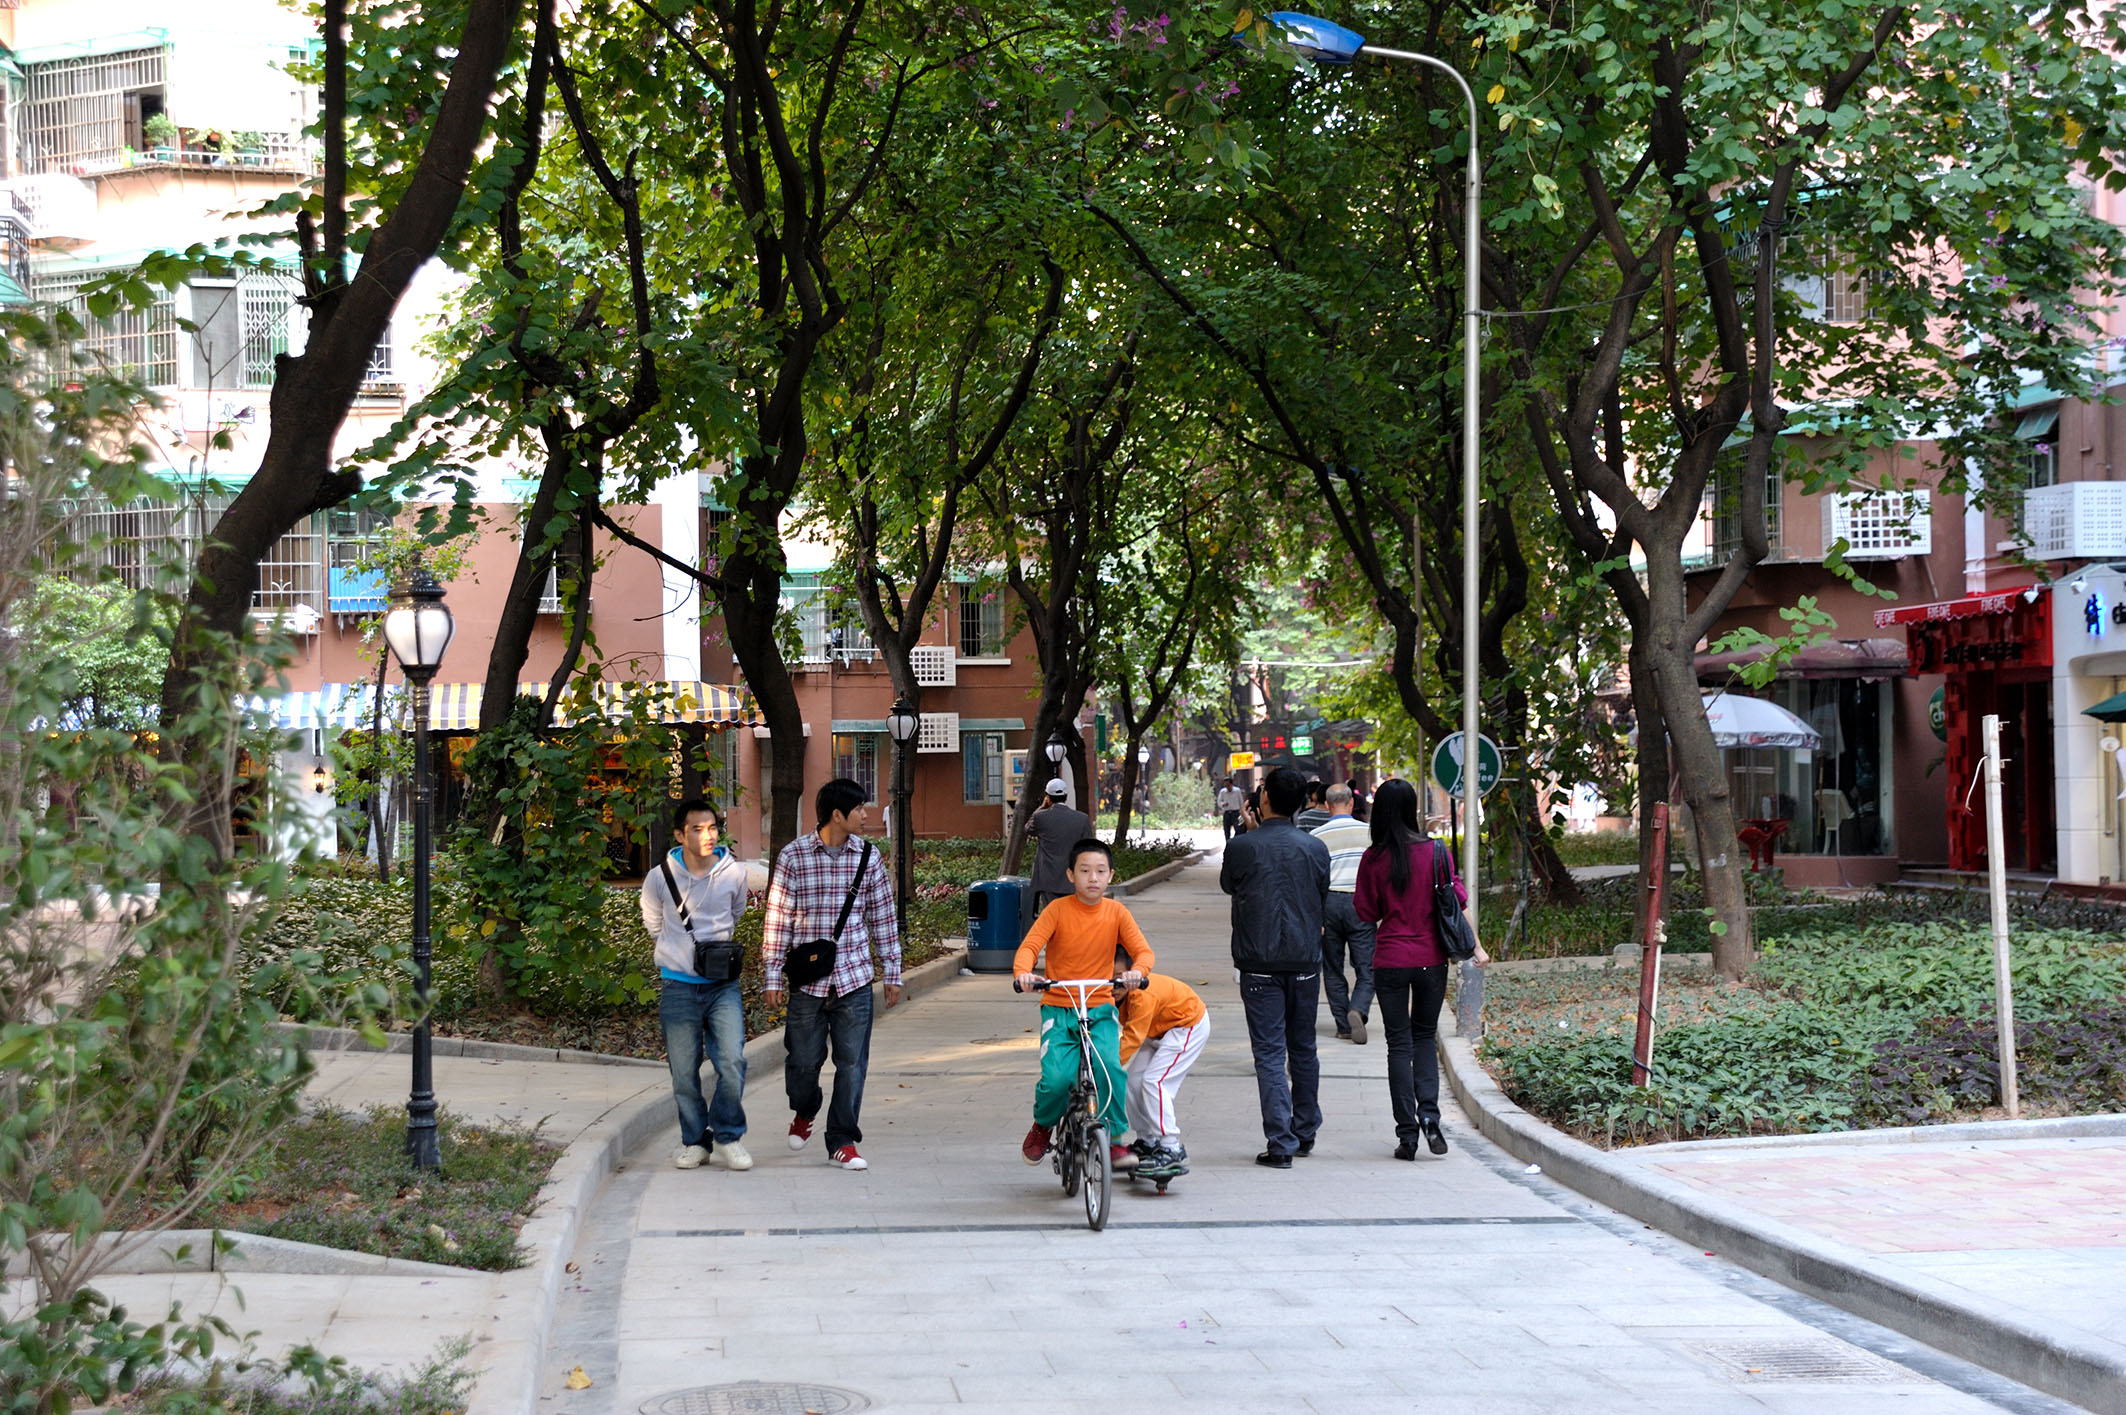 6. NON MOTORIZED TRANSIT   There should be dedicated and connected walking paths of at least 10 km in length per square kilometer, and dedicated and connected biking paths of least 10 km in length per square kilometer in urban areas. A good example of a walkable community is Liuyun Xiaoqu. Ranked fifth on a list of 50 projects by the Institute for Transportation and Development Policy, Liuyun Xiaoqu offers a dense network of pedestrian/bicycle only roads and strict car control.